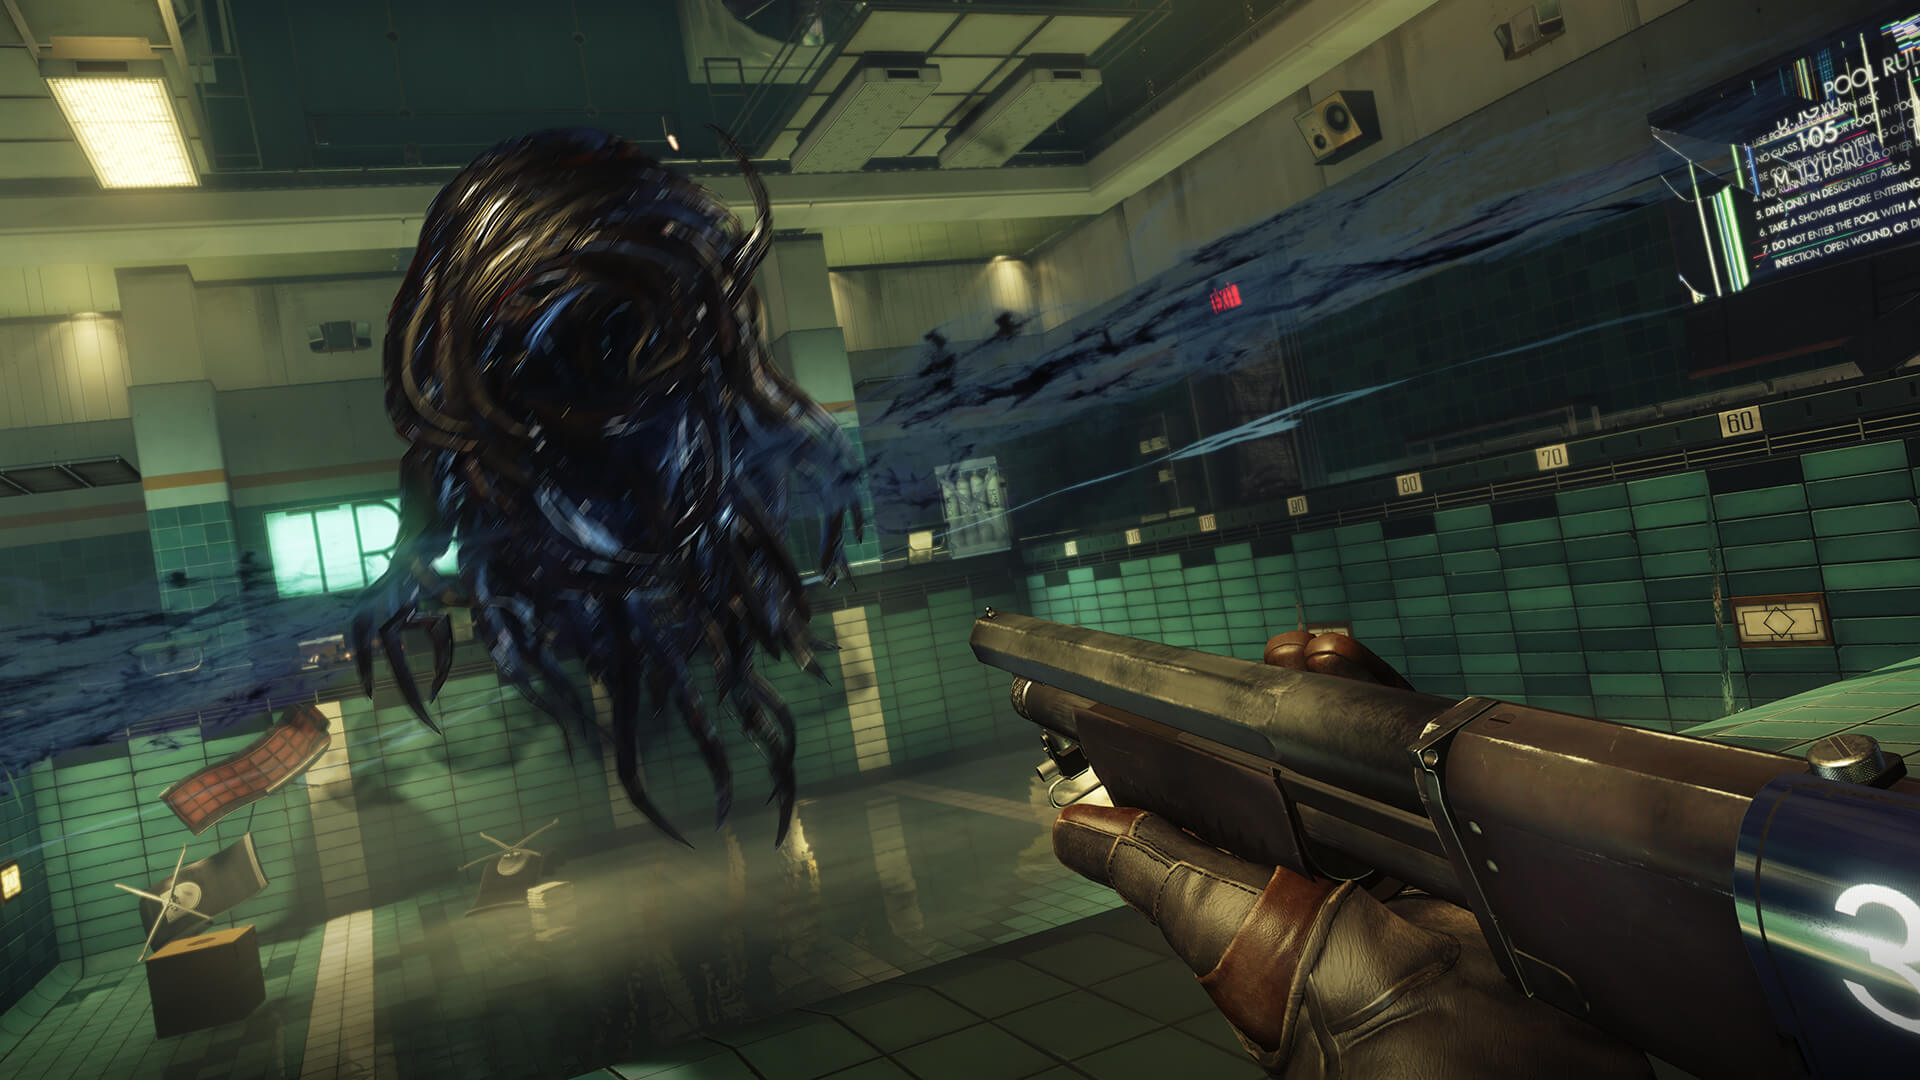 Prey Gets An Official Release Date in New Trailer